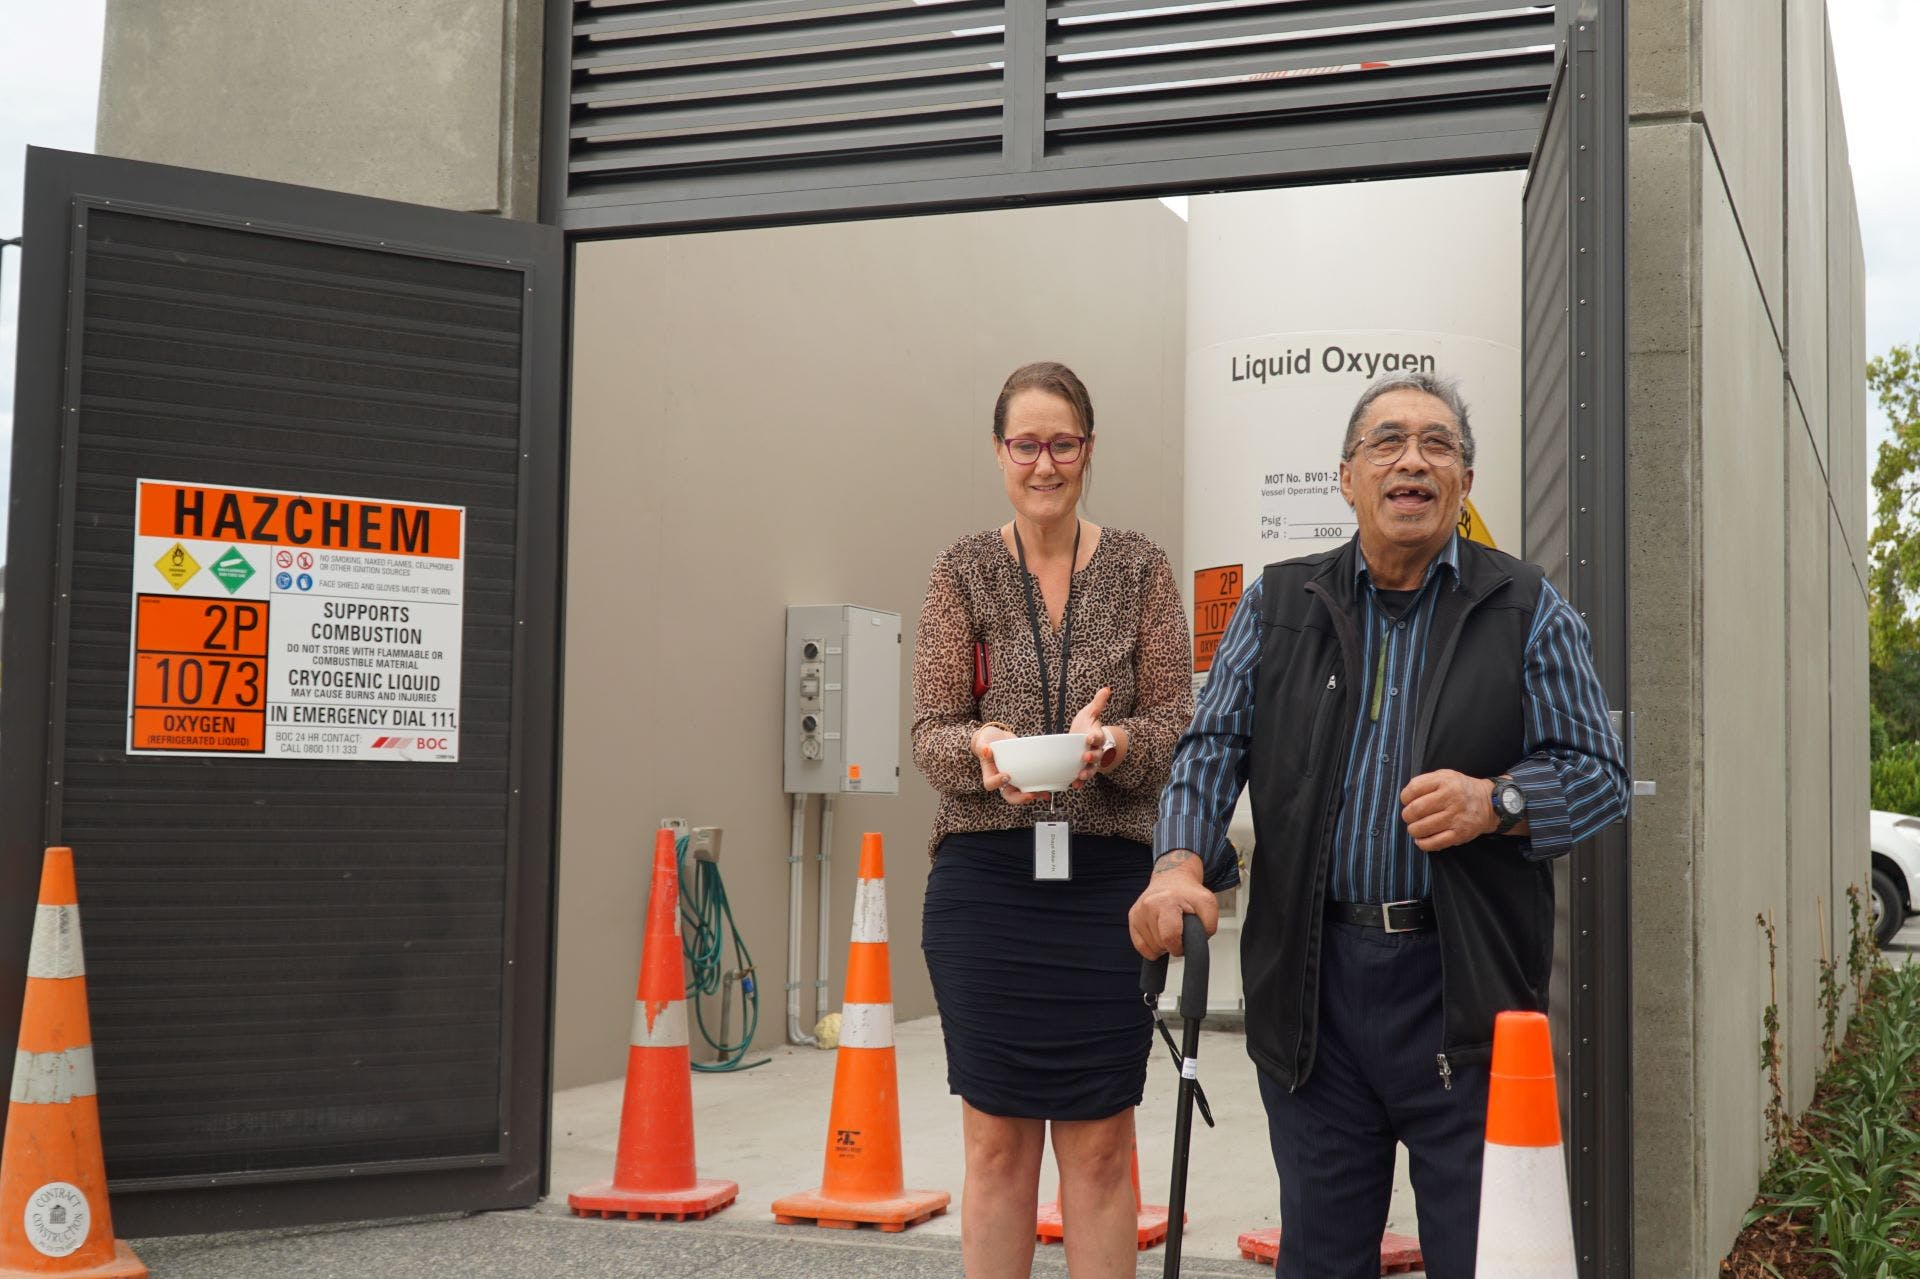 Kaumatua Kawiti Waititi at the blessing and celebration of Forté Health's new oxygen supply system.